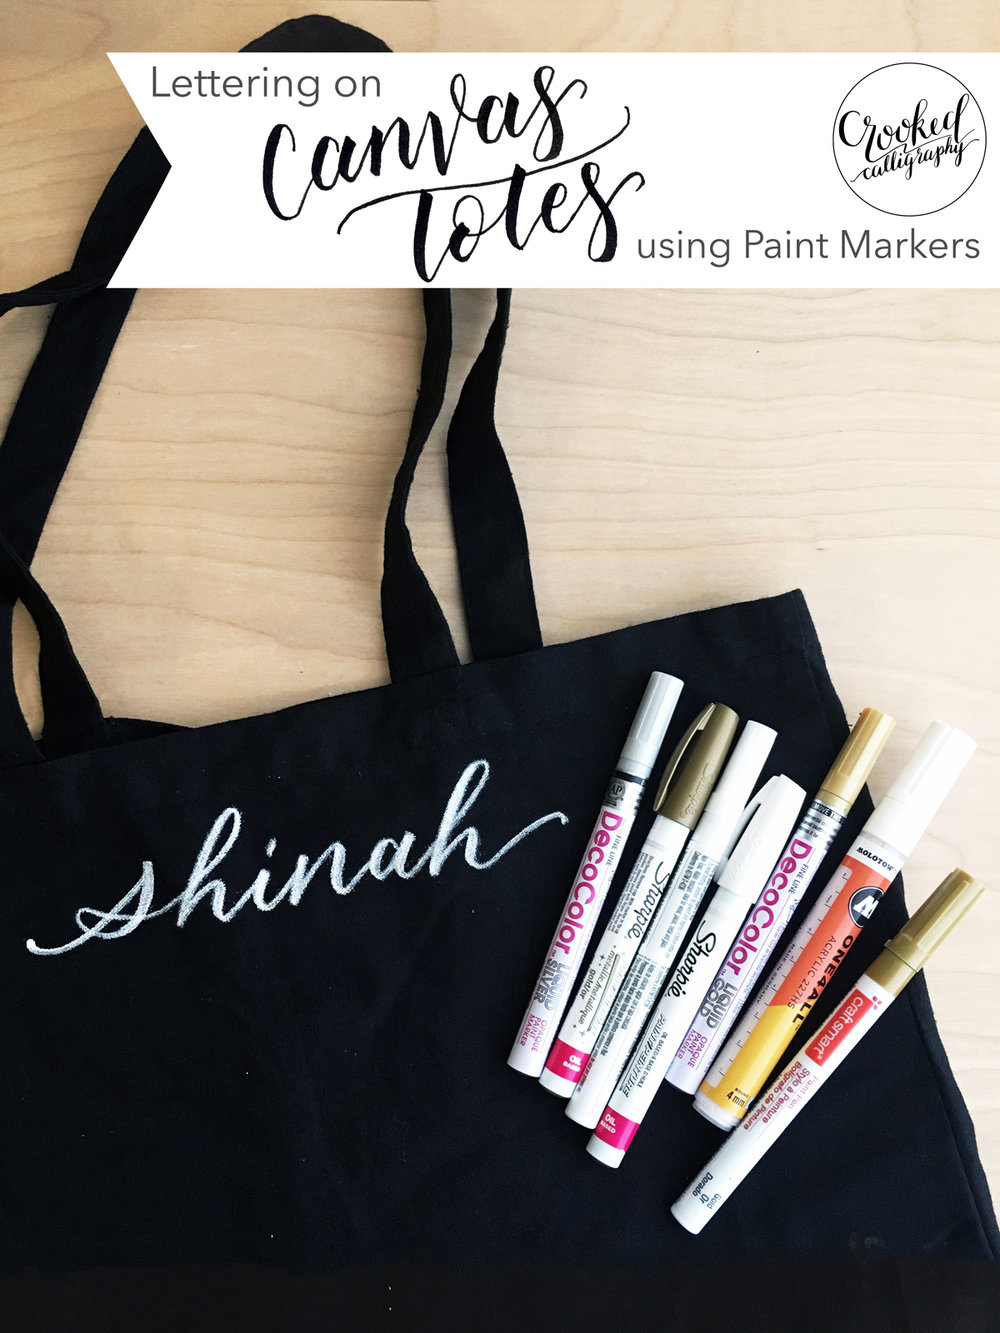 Calligraphy on Fabric using Paint Markers by Crooked Calligraphy